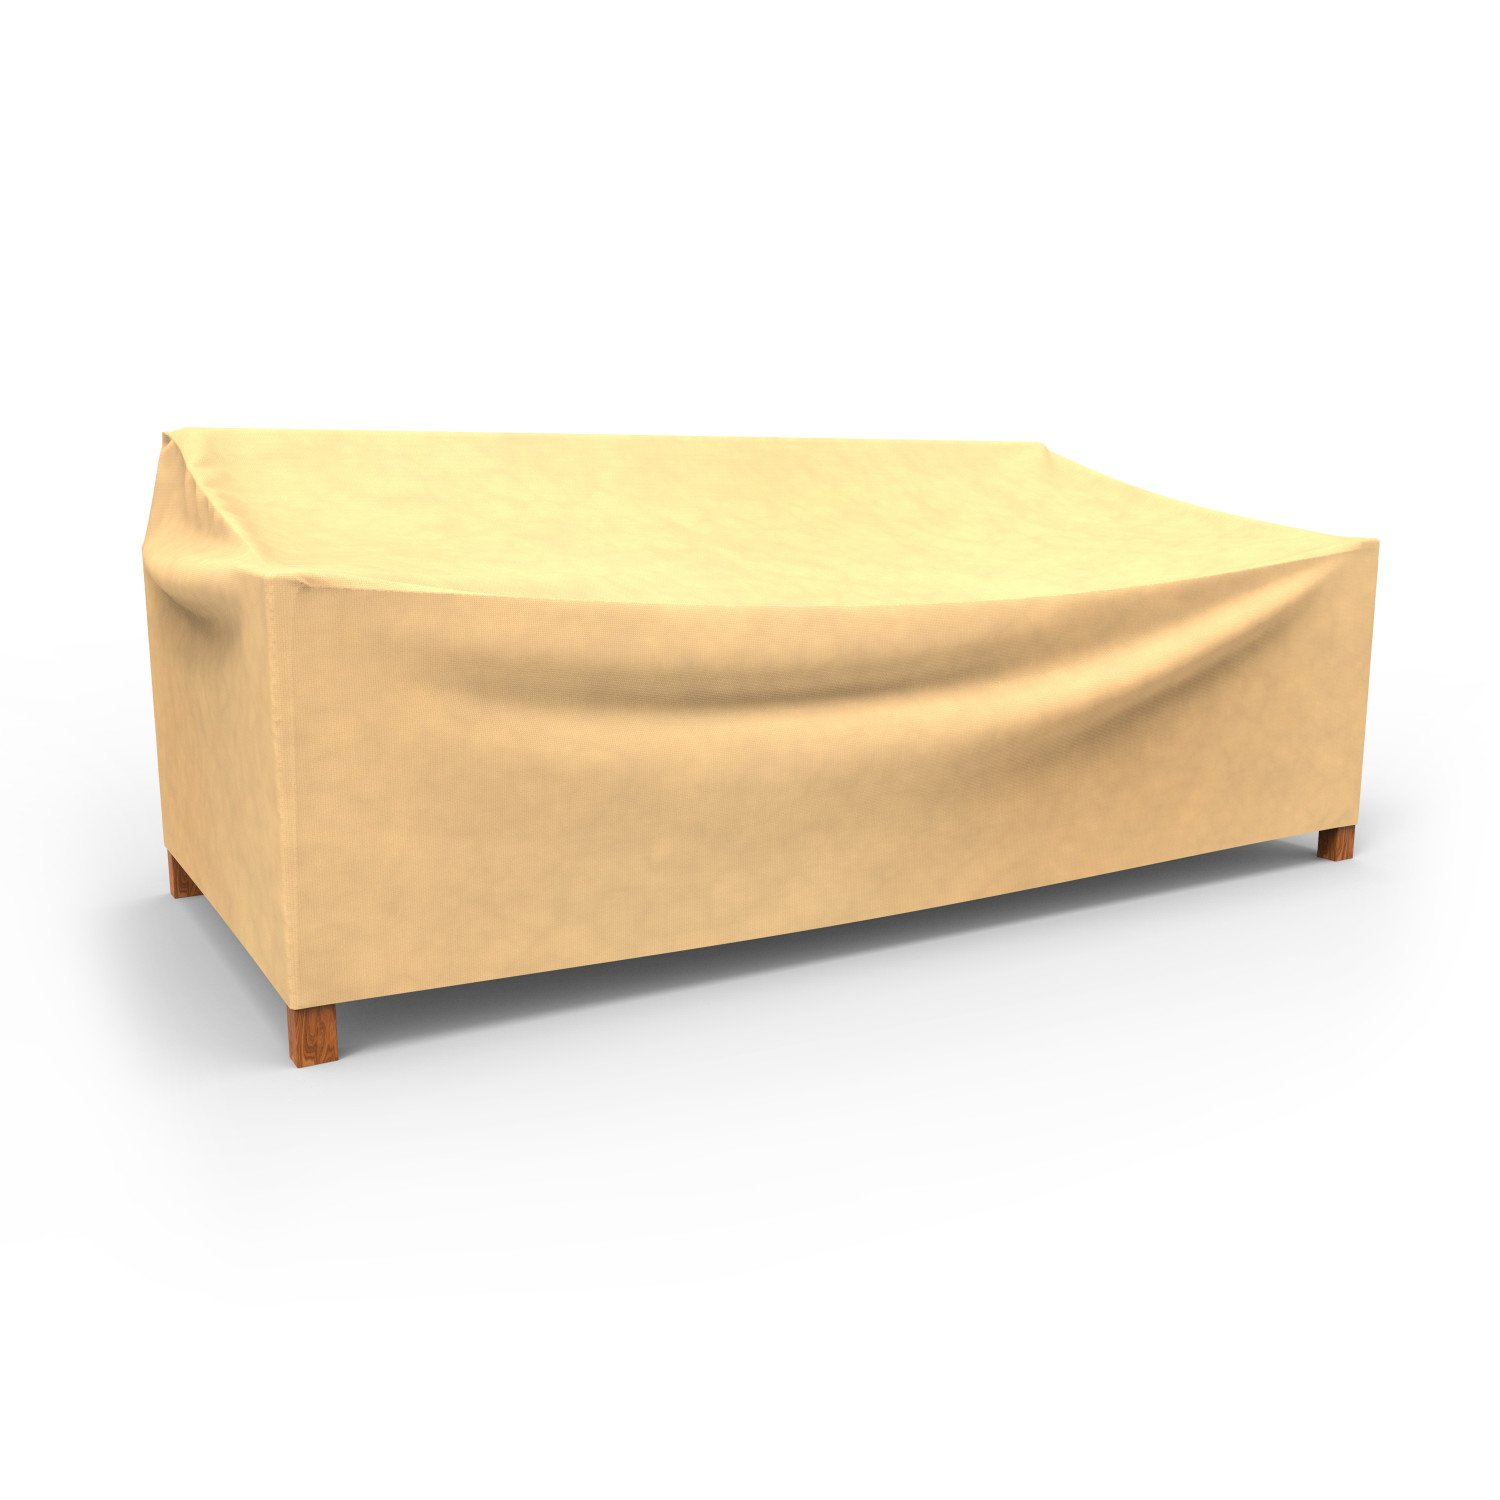 Budge All-Seasons Outdoor Patio Loveseat Cover, Extra Large (Tan) by Budge